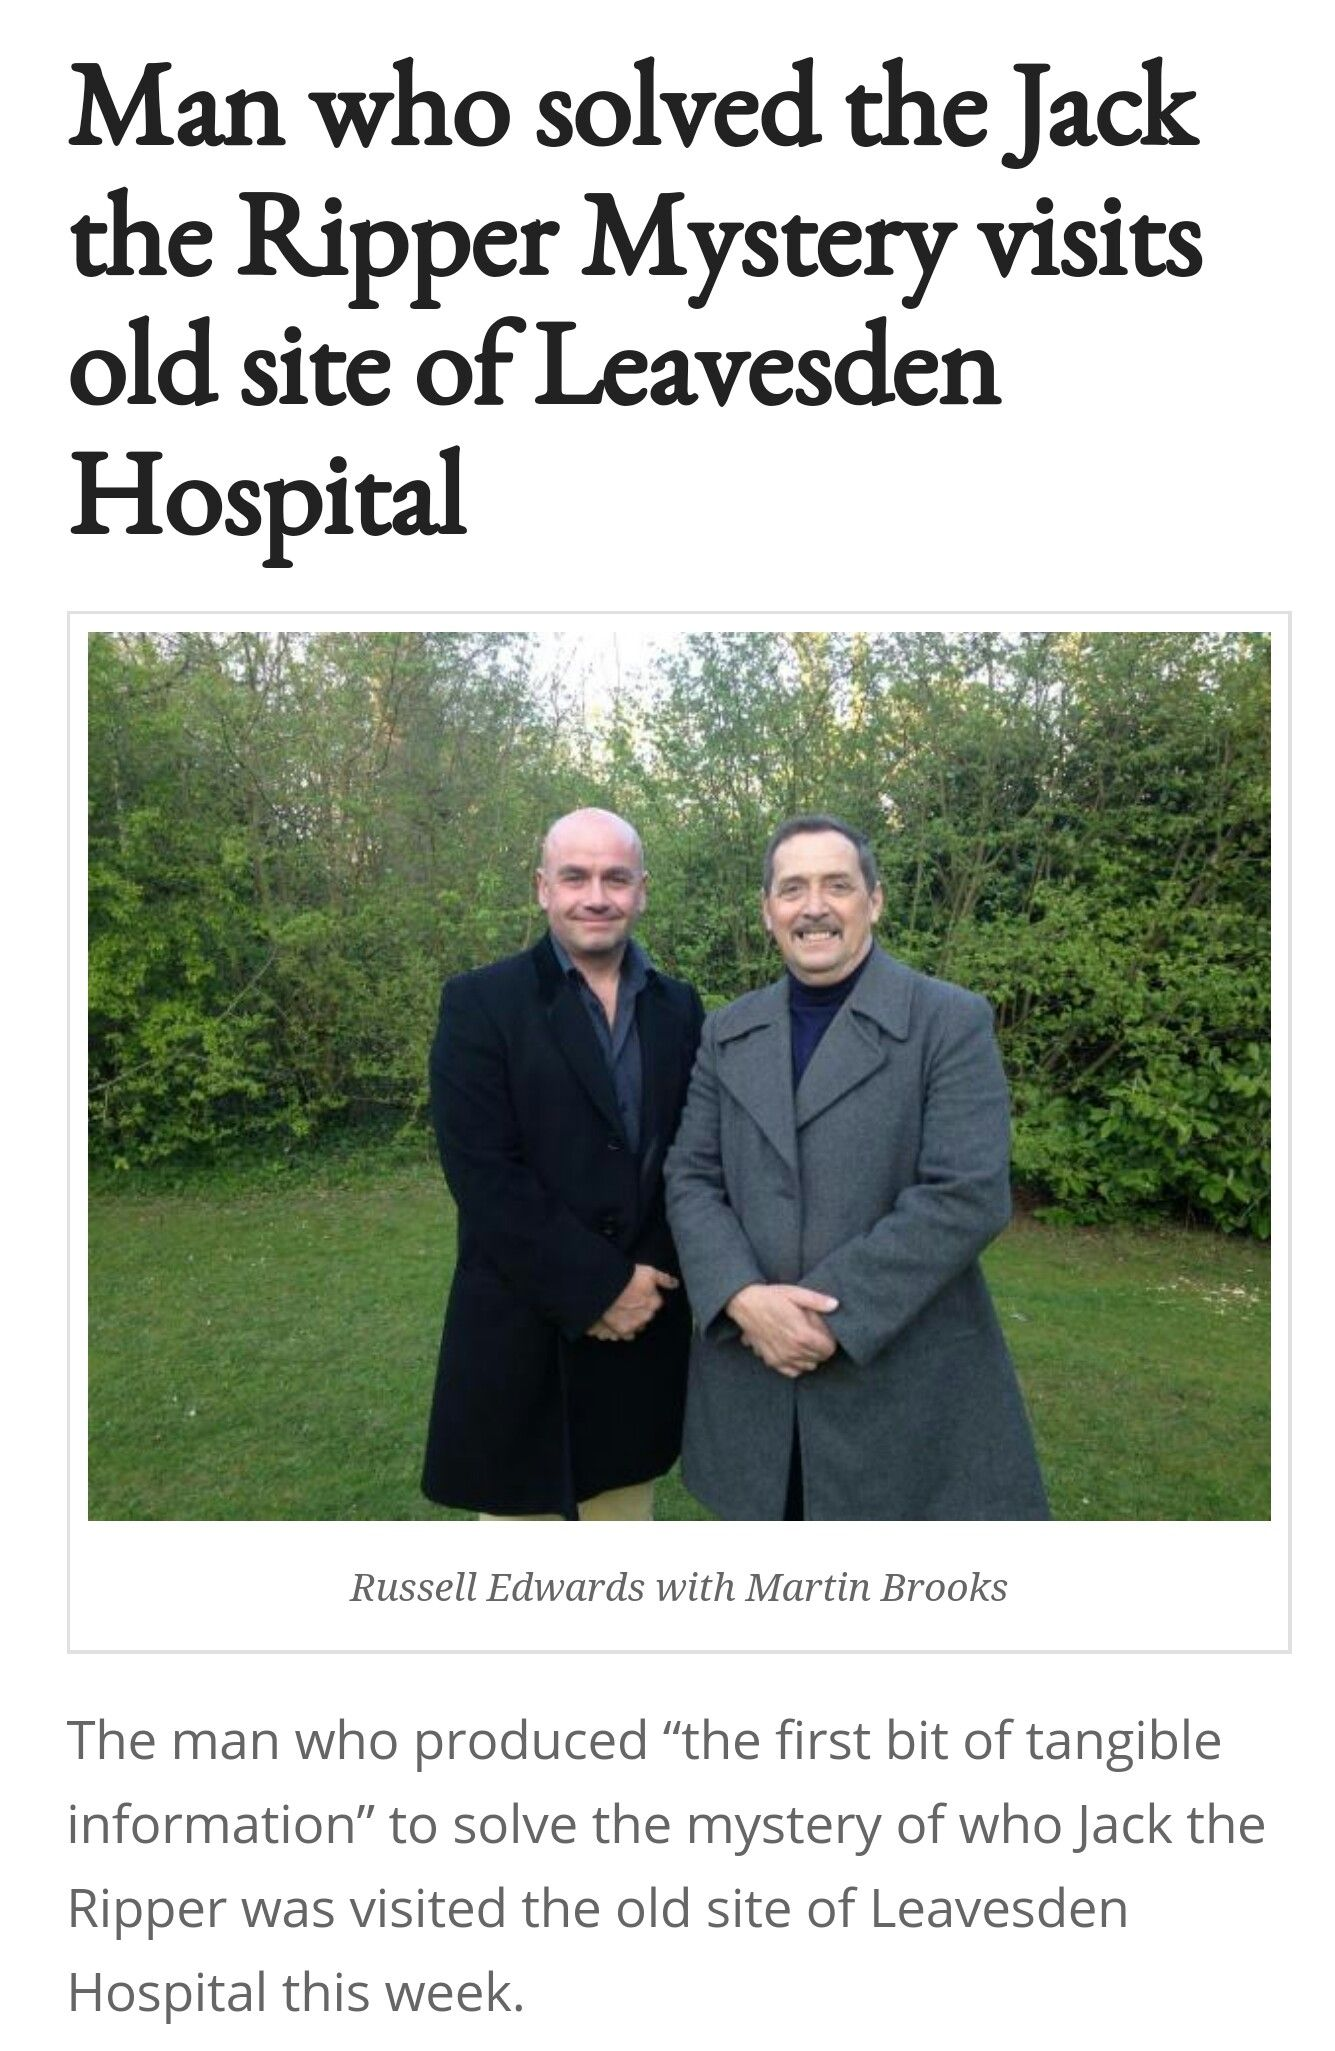 Jack the Ripper was incarcerated at Leavesden Hospital